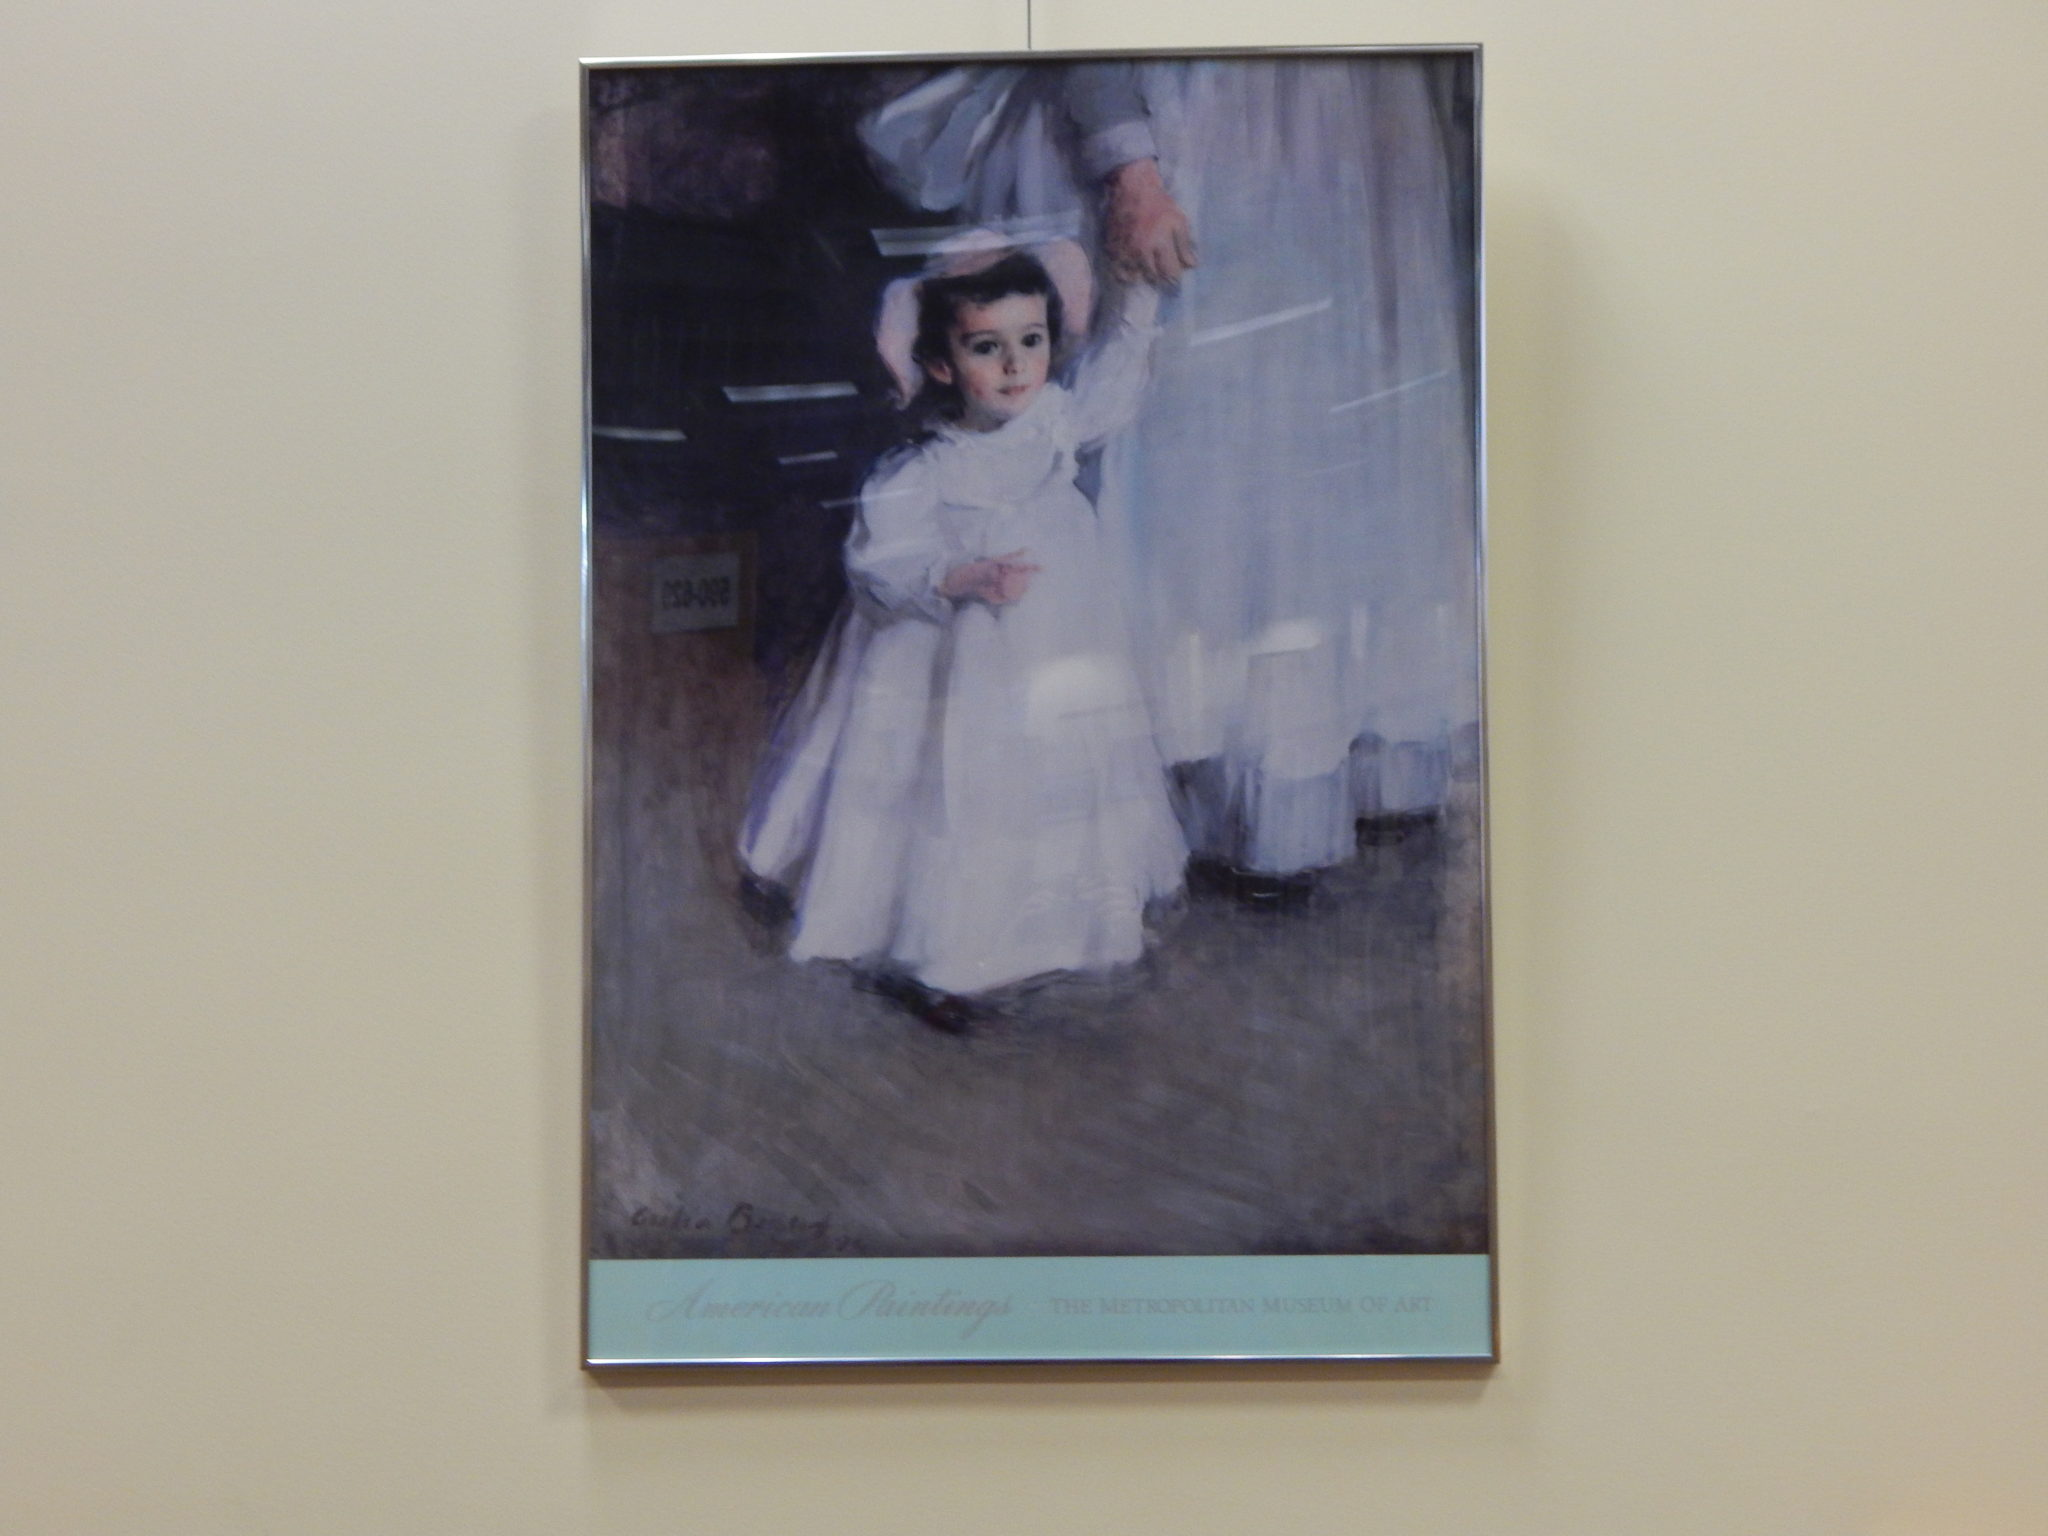 Met. Museum of Art poster of small girl with governess oil painting